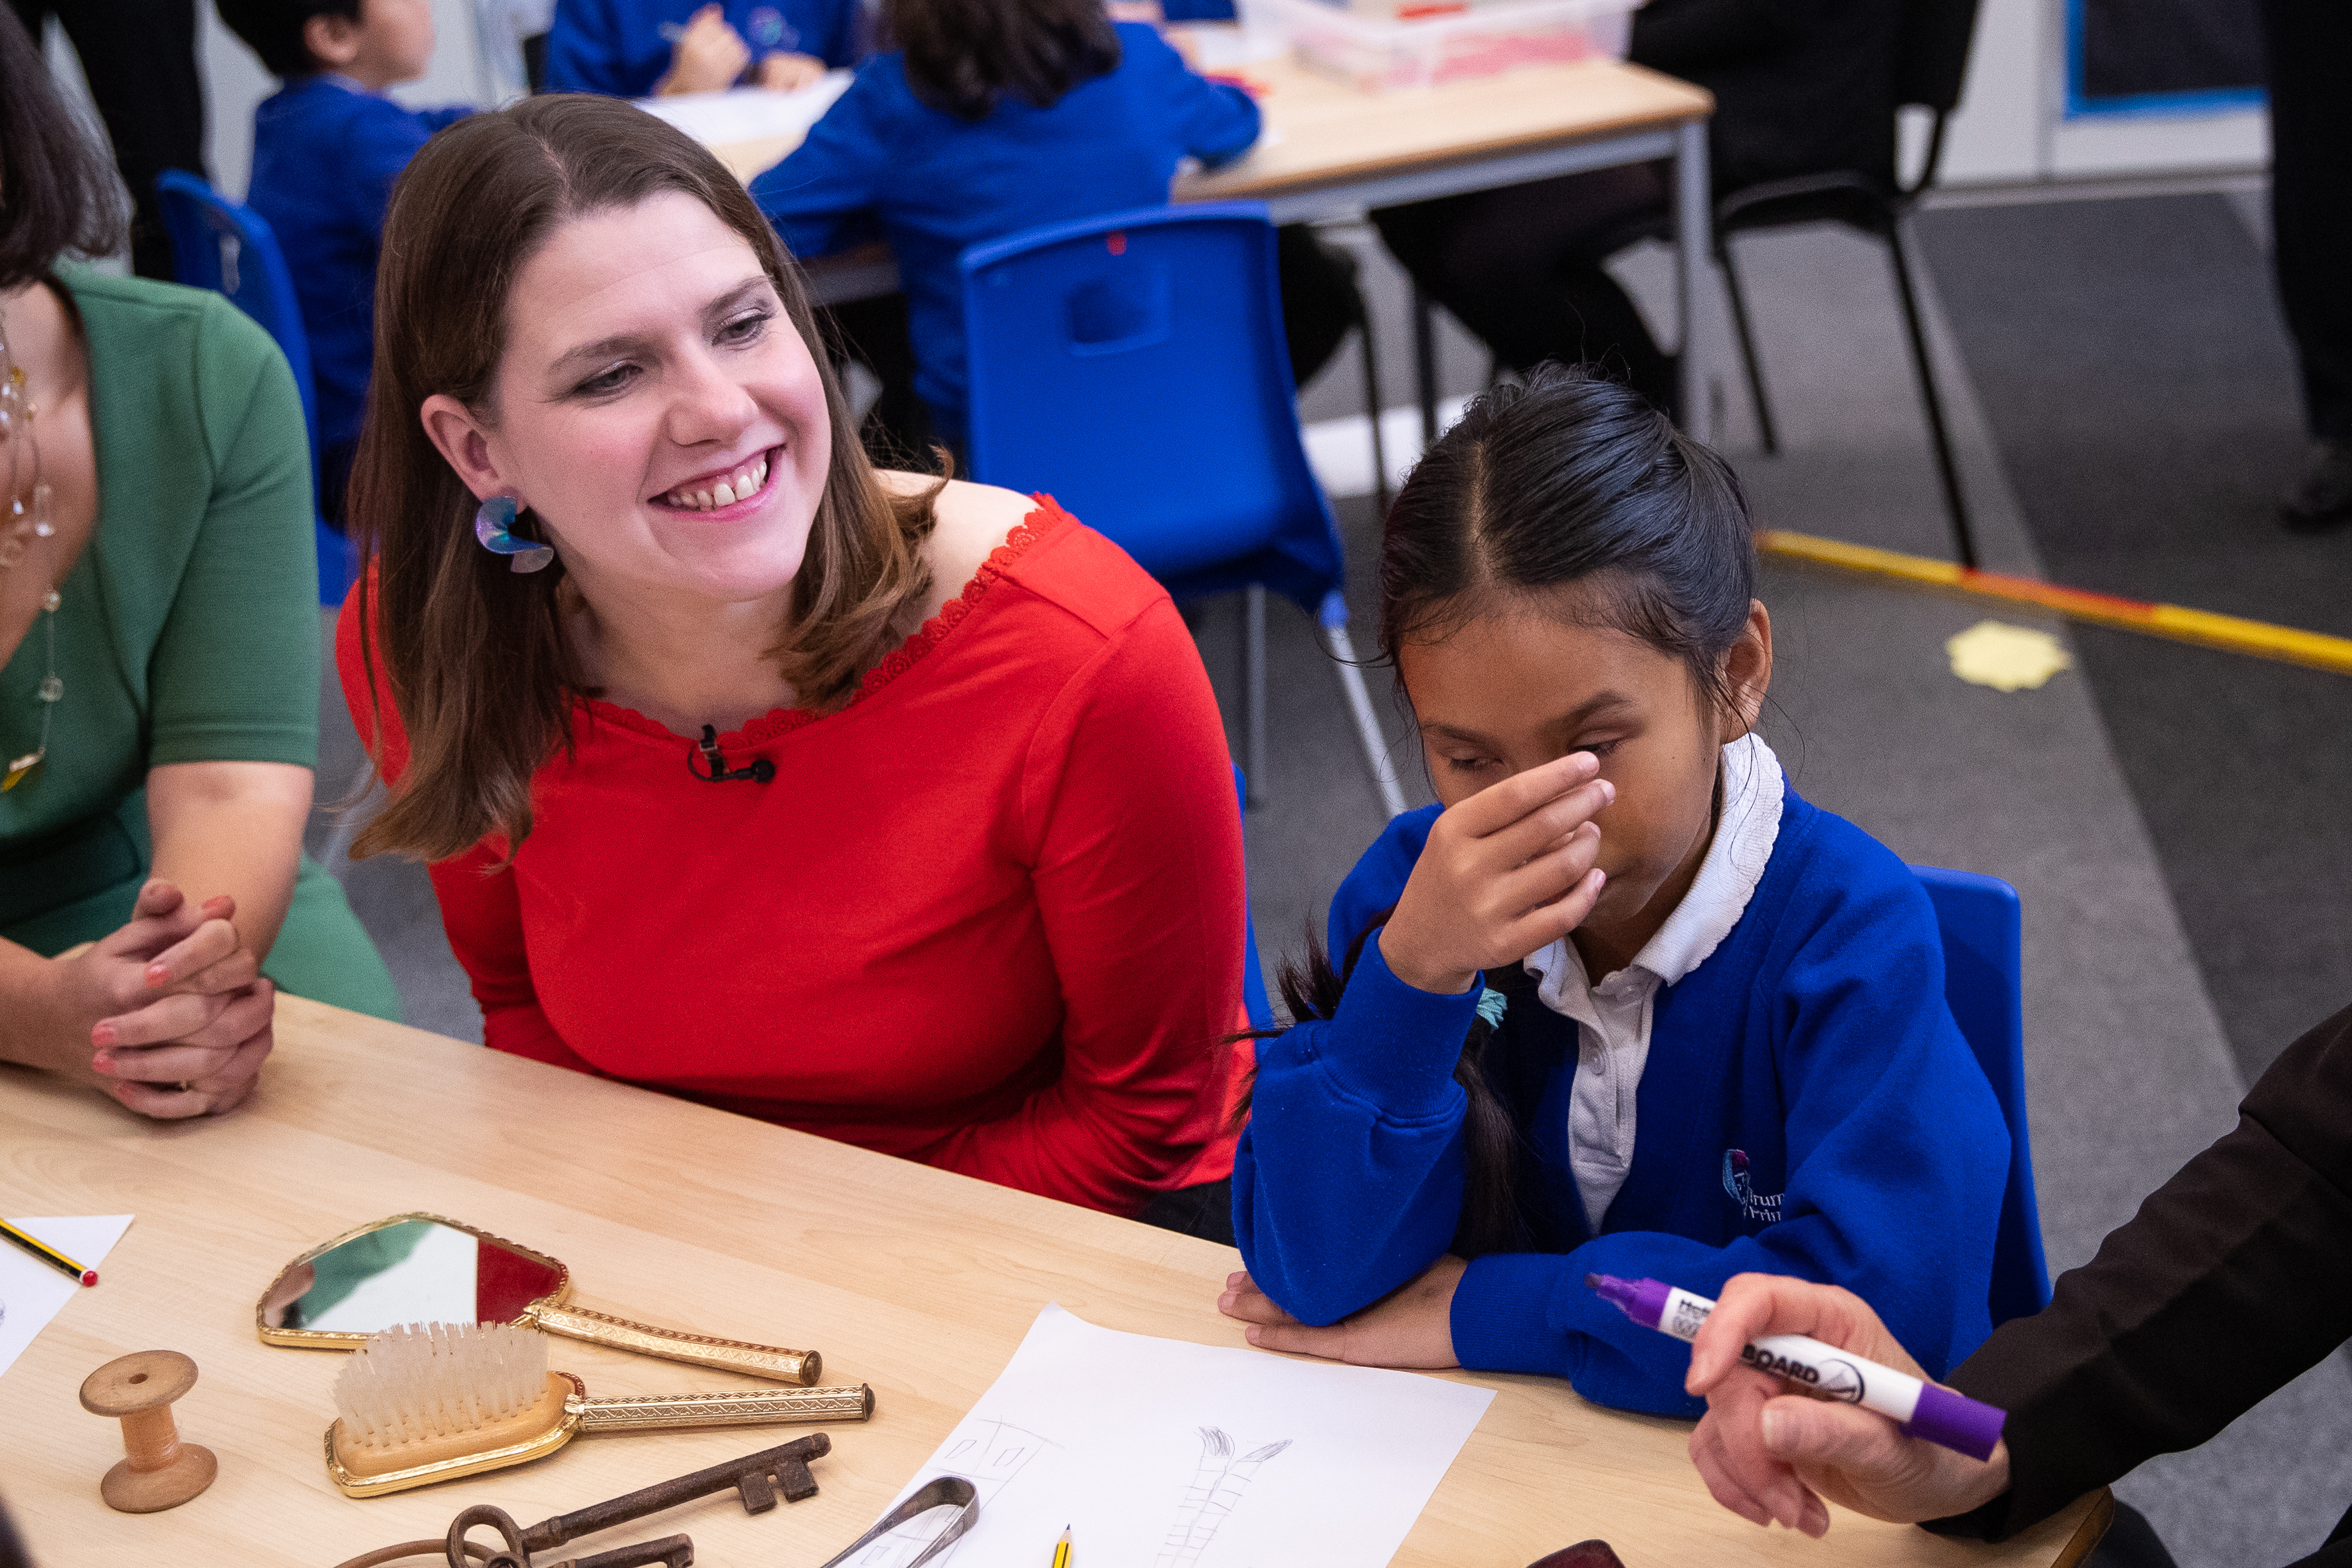 Liberal Democrats leader Jo Swinson during a visit to Trumpington Park Primary School, in Cambridge, whilst campaigning for the General Election.